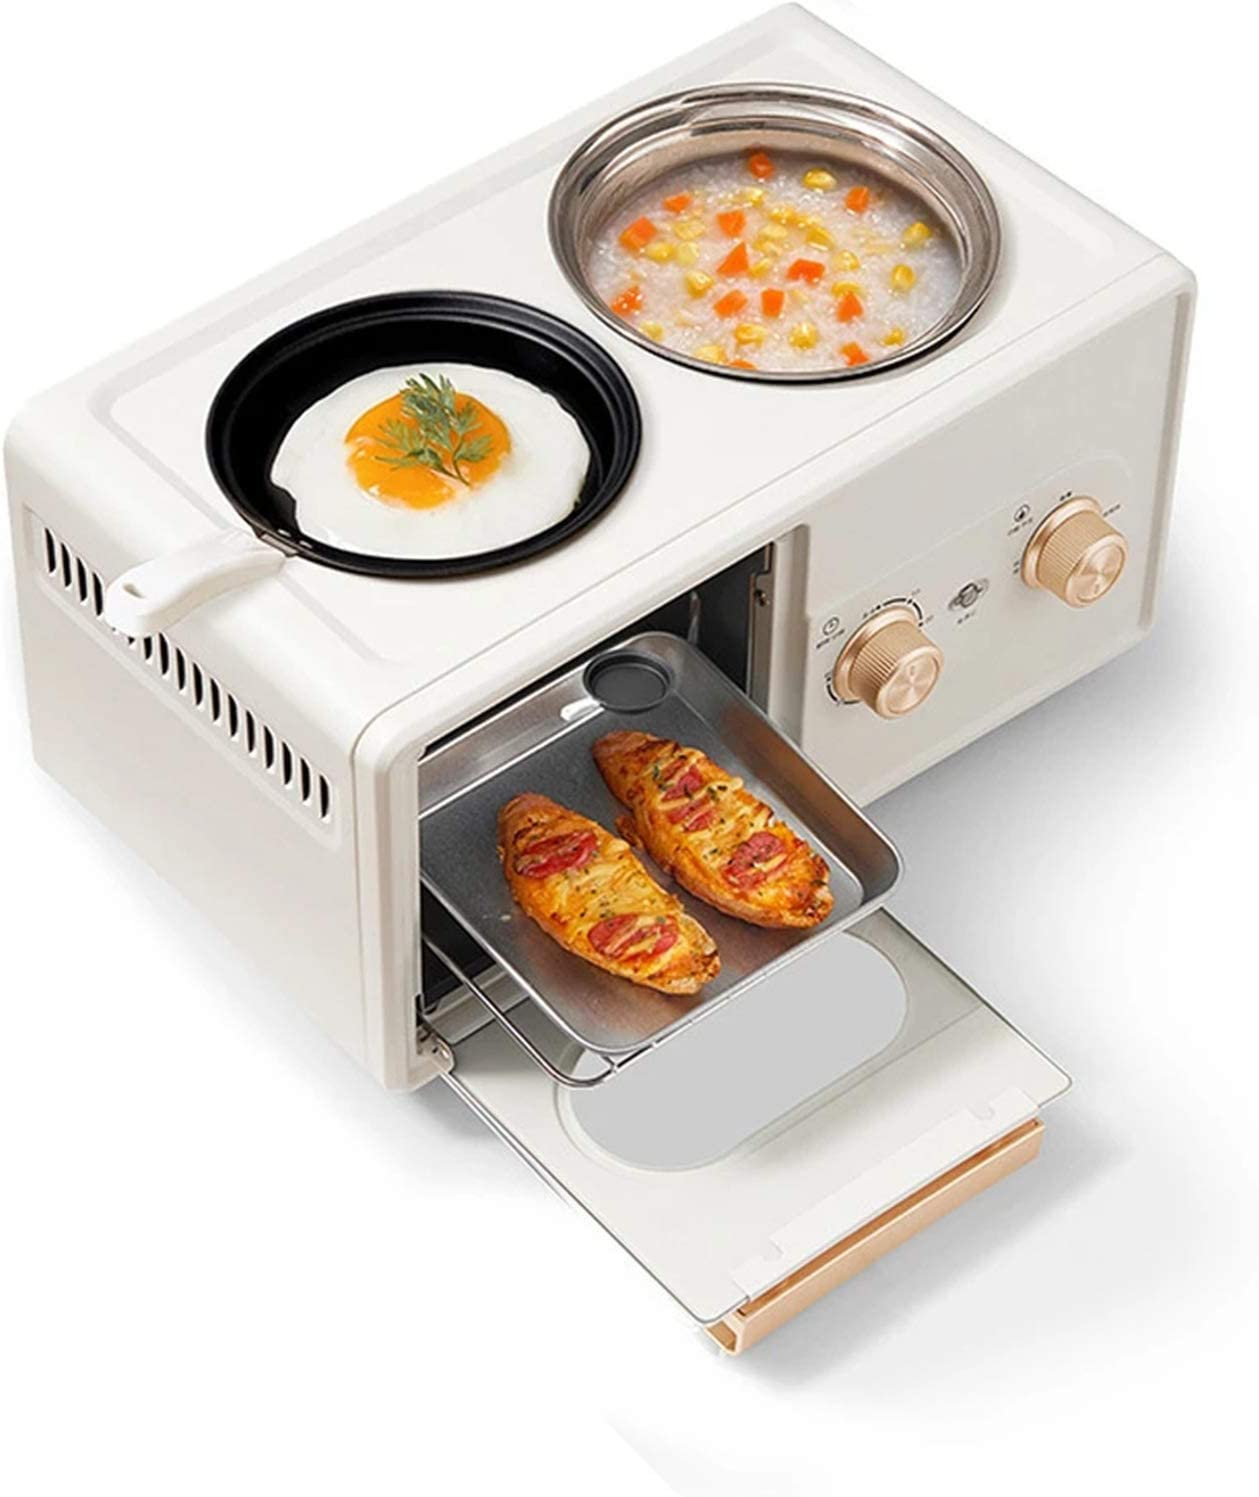 GMZS Toaster Oven, Household Multifunctional Four in One Breakfast Cooking Toaster, The Oven Has Double U-Shaped Heating Pipes, for Kitchen Appliances,White